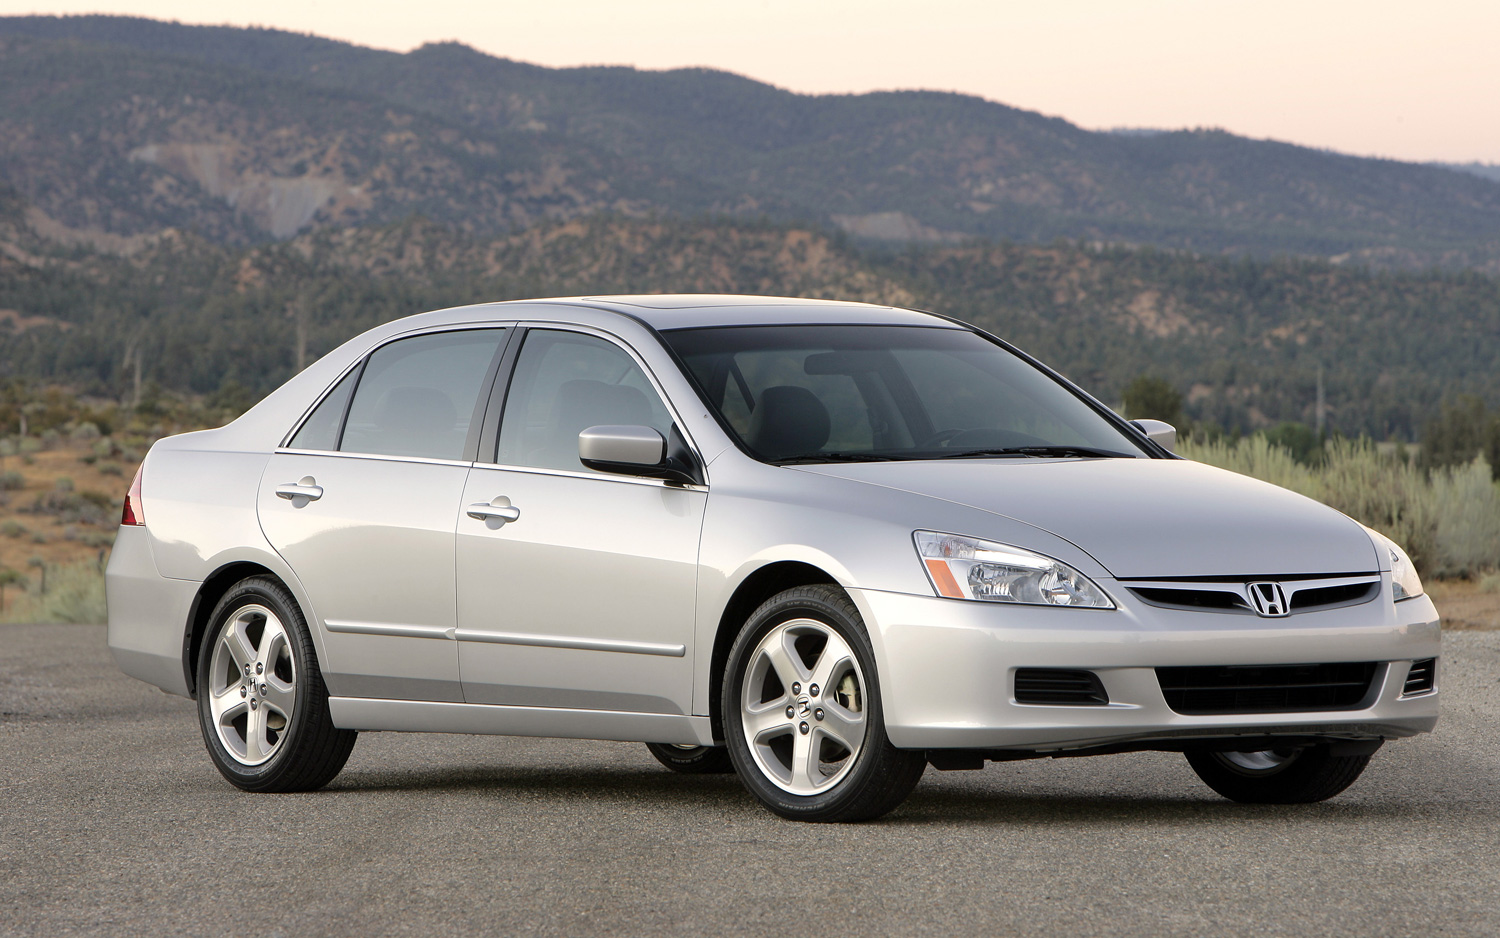 Honda Recalls 573,147 2003-2007 Accords and 52,615 2007-2008